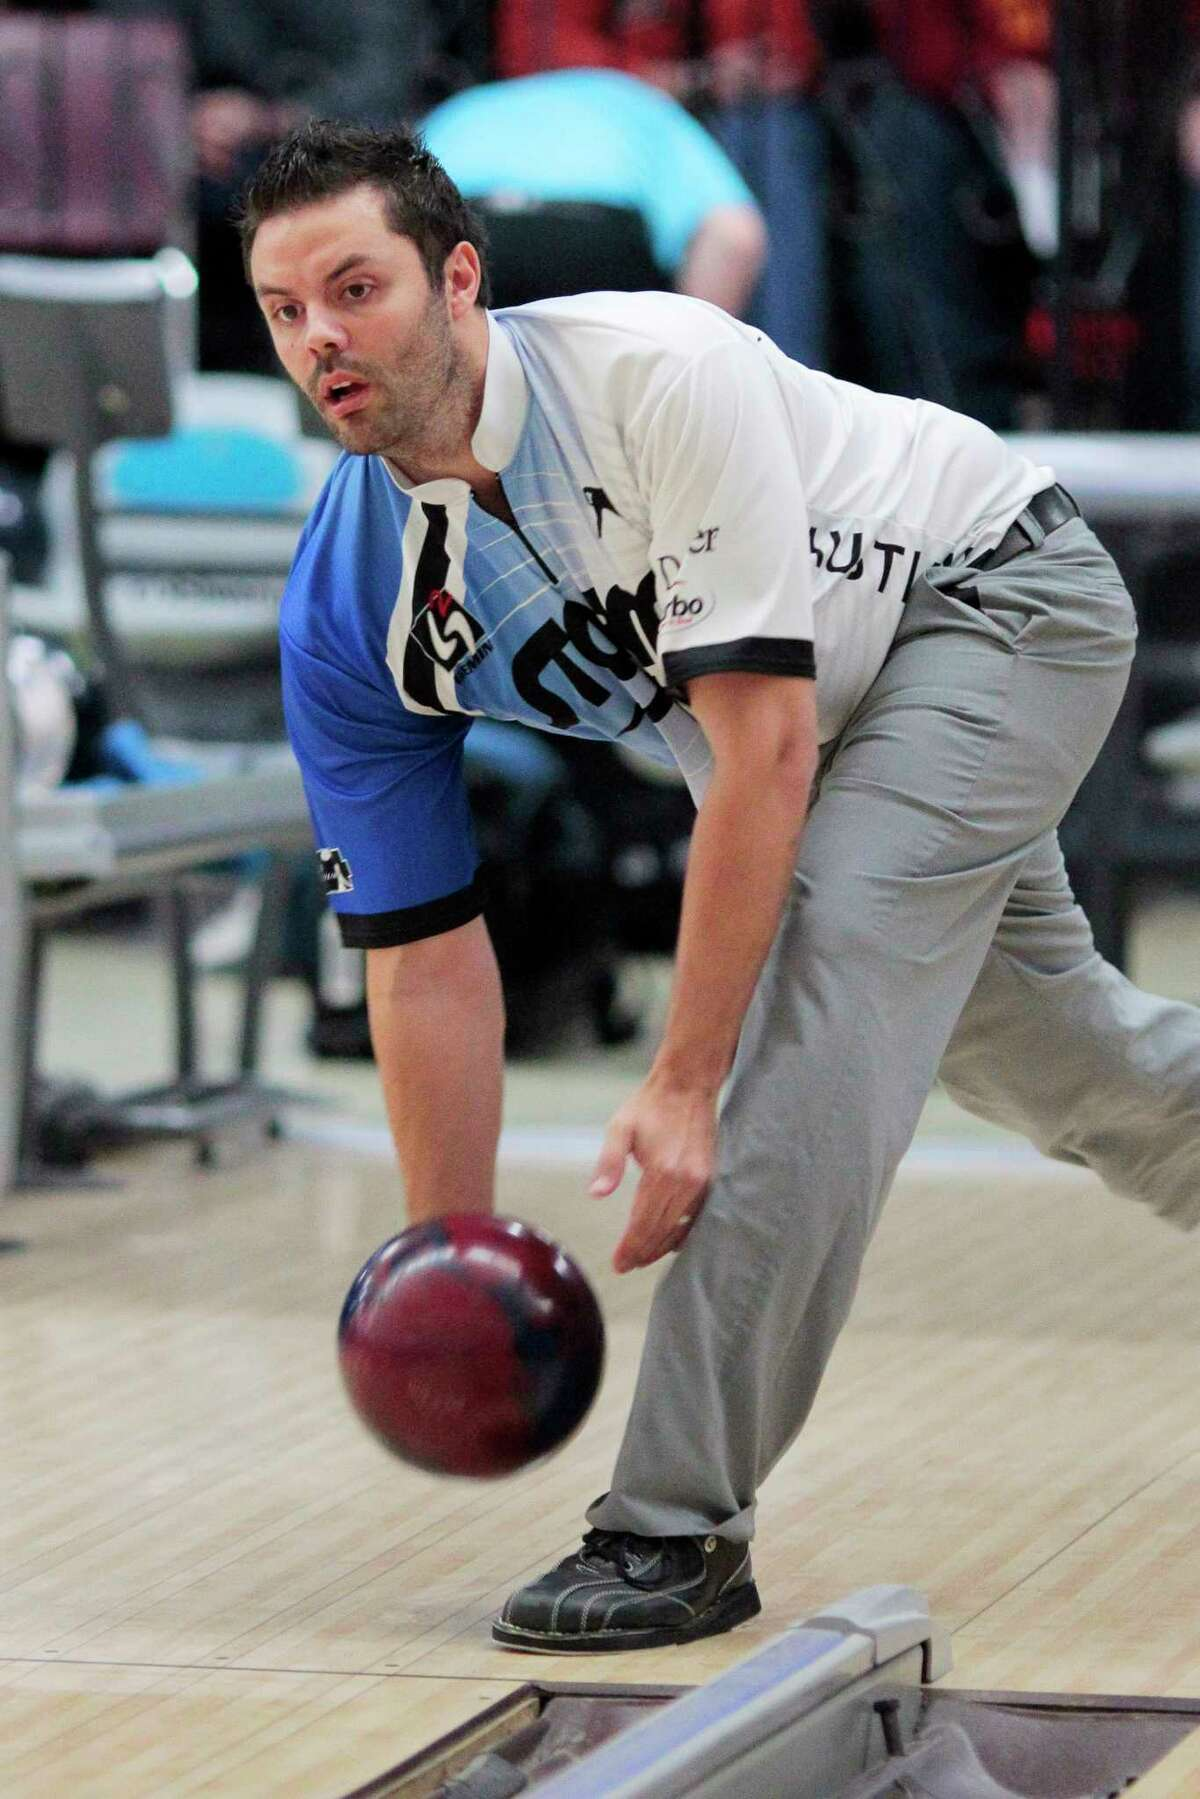 Two-handed bowler Jason Belmonte of Australia warms up before the start of the PBA U.S. Open at Carolier Lanes this afternoon. North Brunswick, NJ 2/26/11 (Tony Kurdzuk/The Star-Ledger)